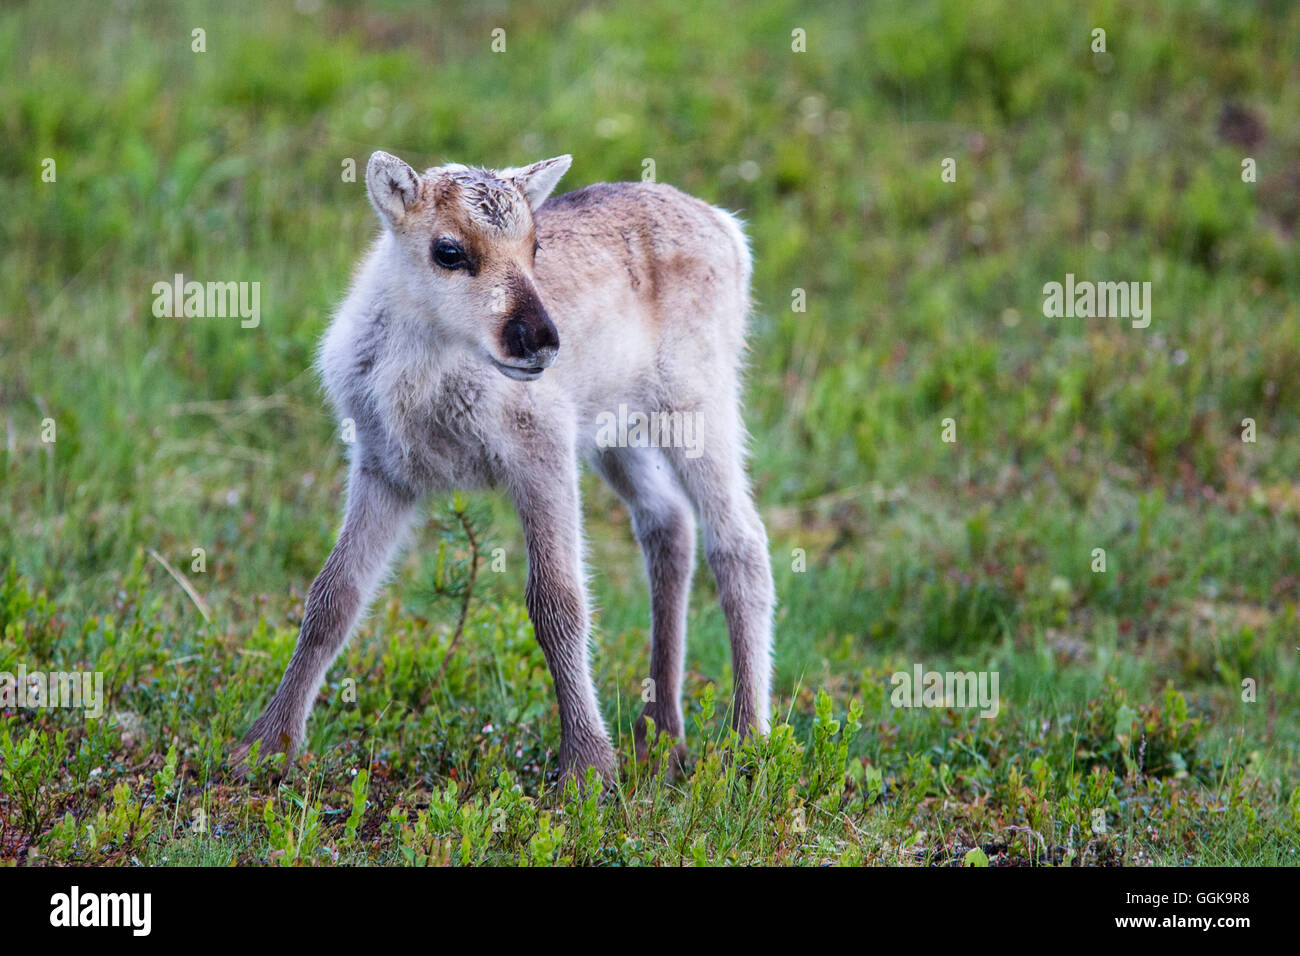 Young reindeer, Oulanka National Park, Northern Ostrobothnia, Finland - Stock Image